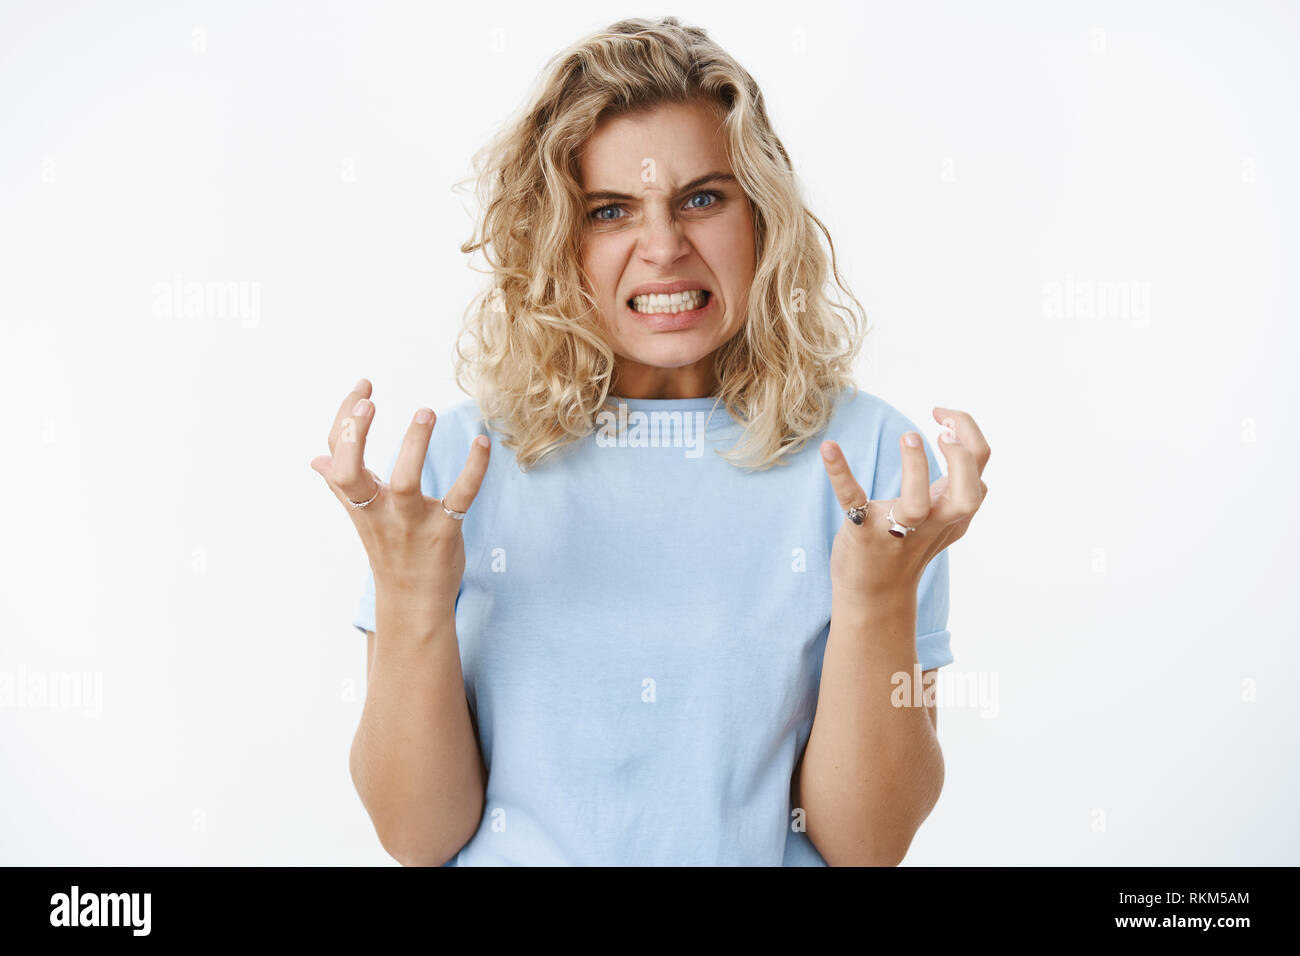 Girl gonna blow out over anger and distress clench teeth and fists in fury and dismay frowning being pressured and distressed full of hate, looking - Stock Image